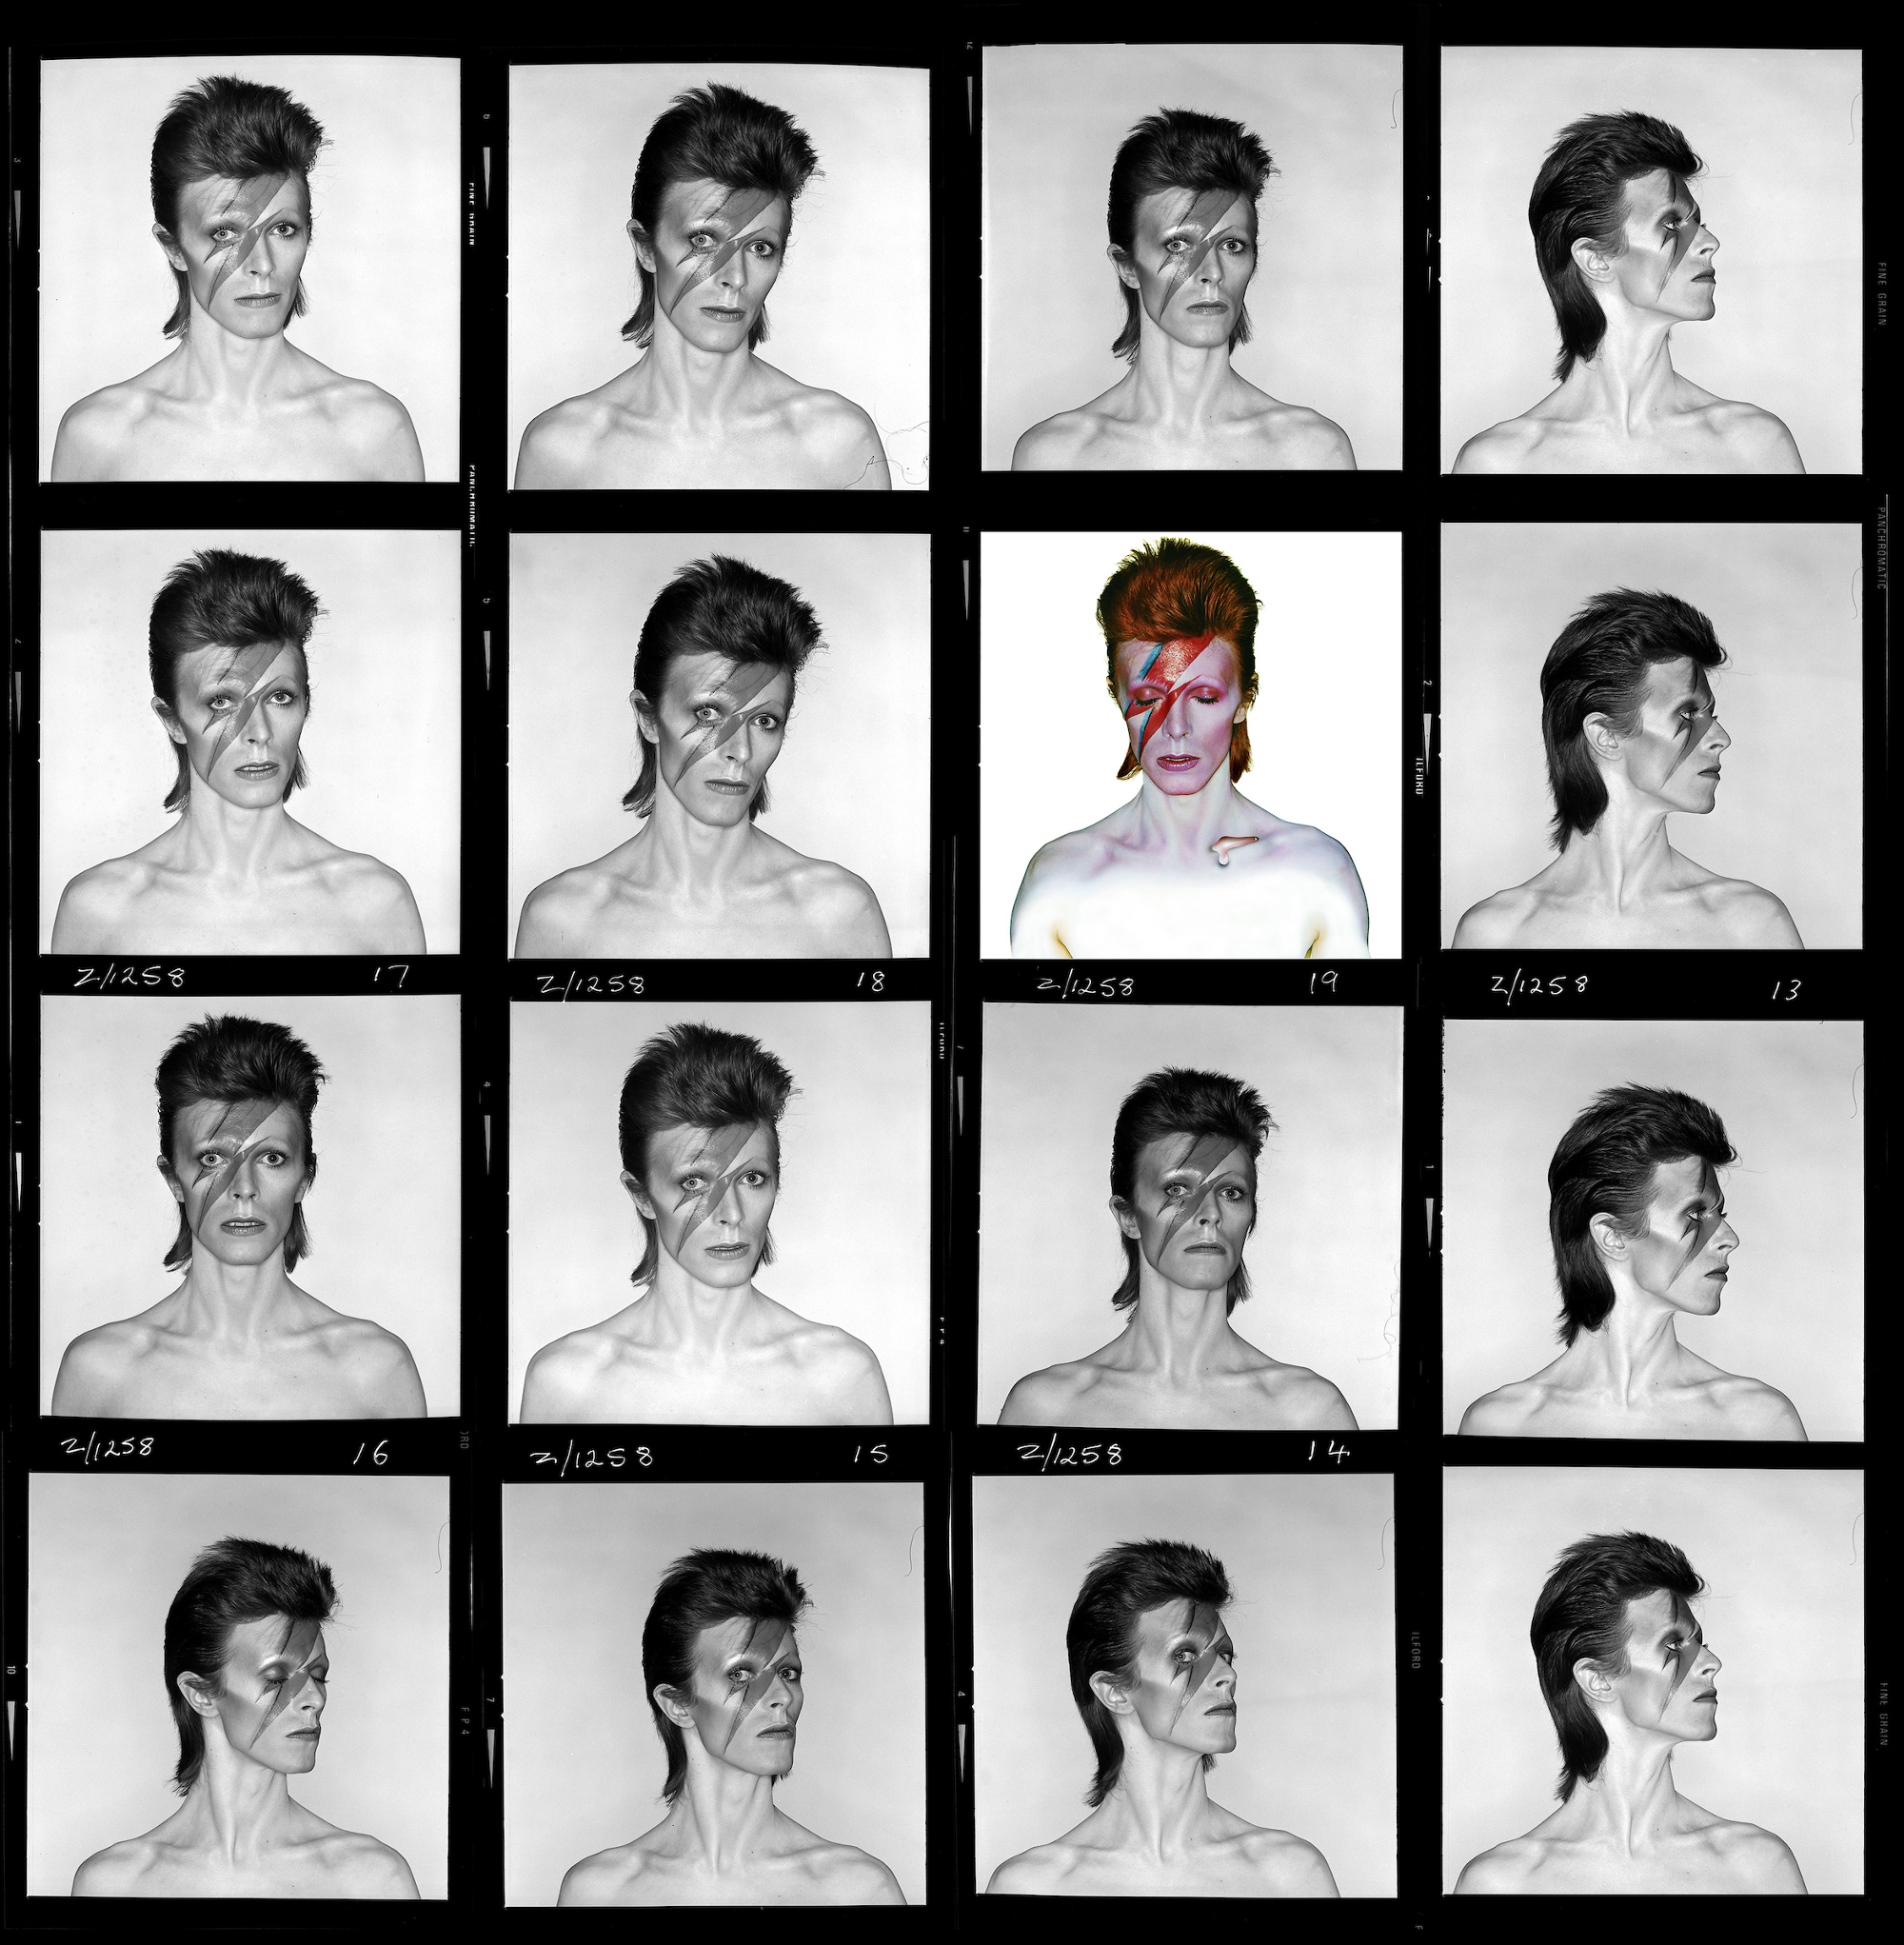 Aladdin Sane contact sheet, 1973.